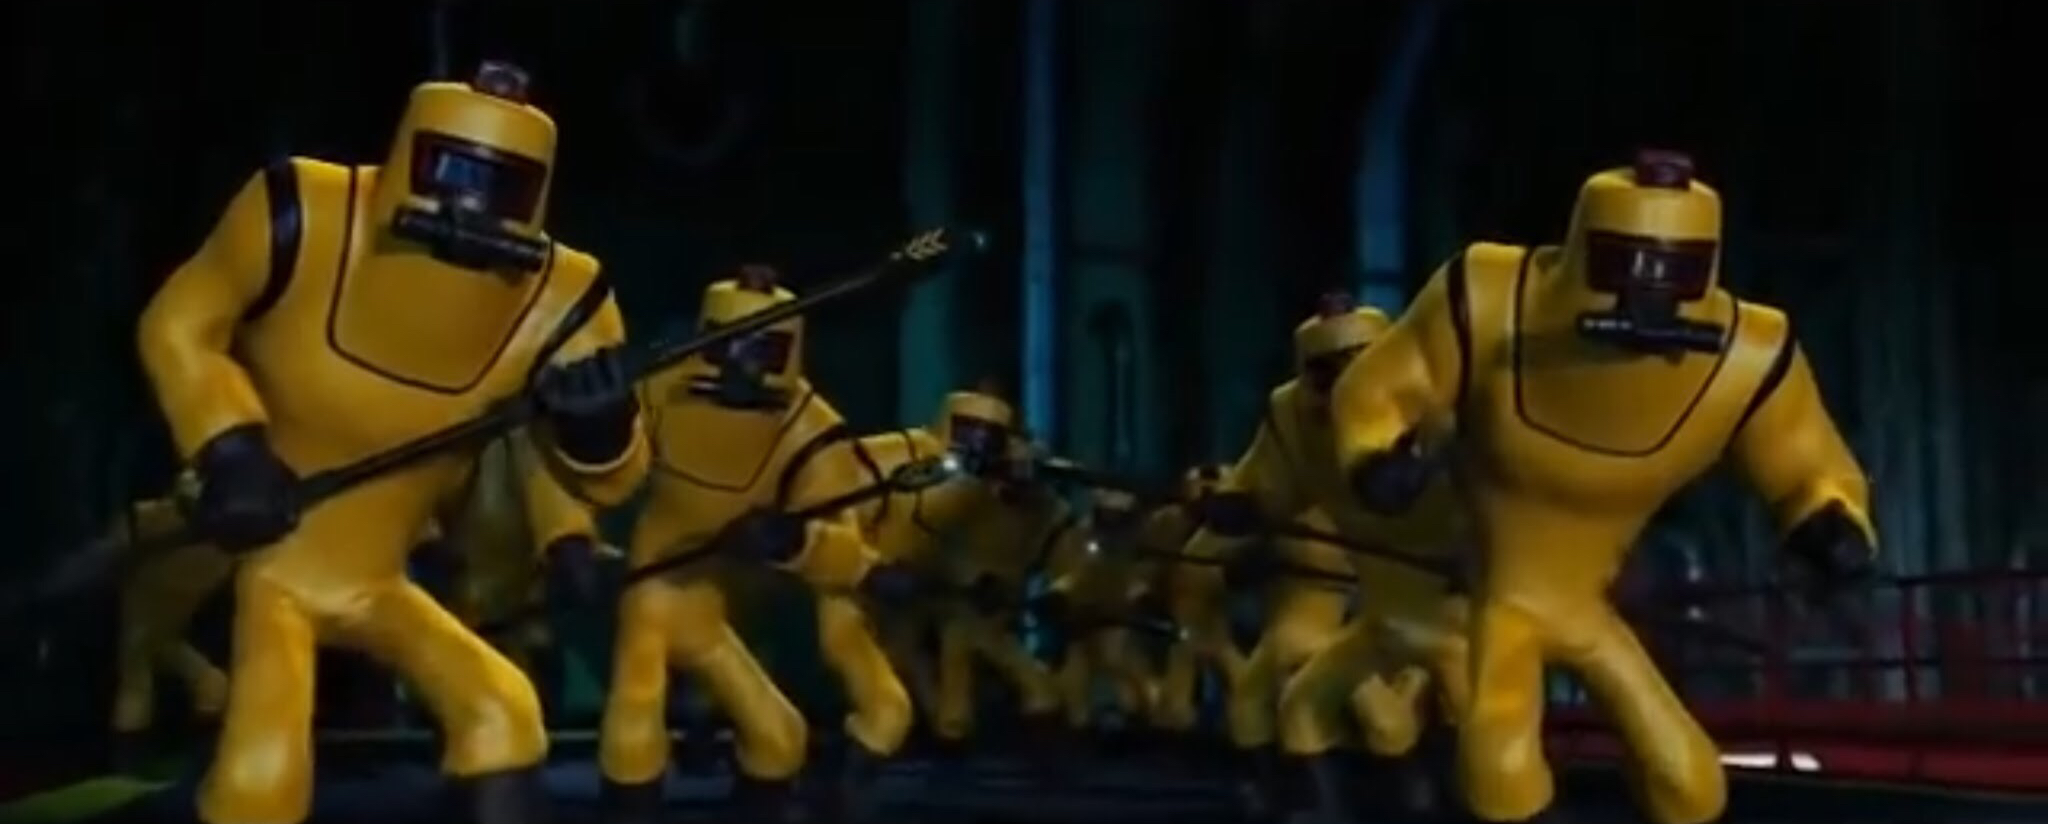 Shanker's Troops (Escape From Planet Earth)